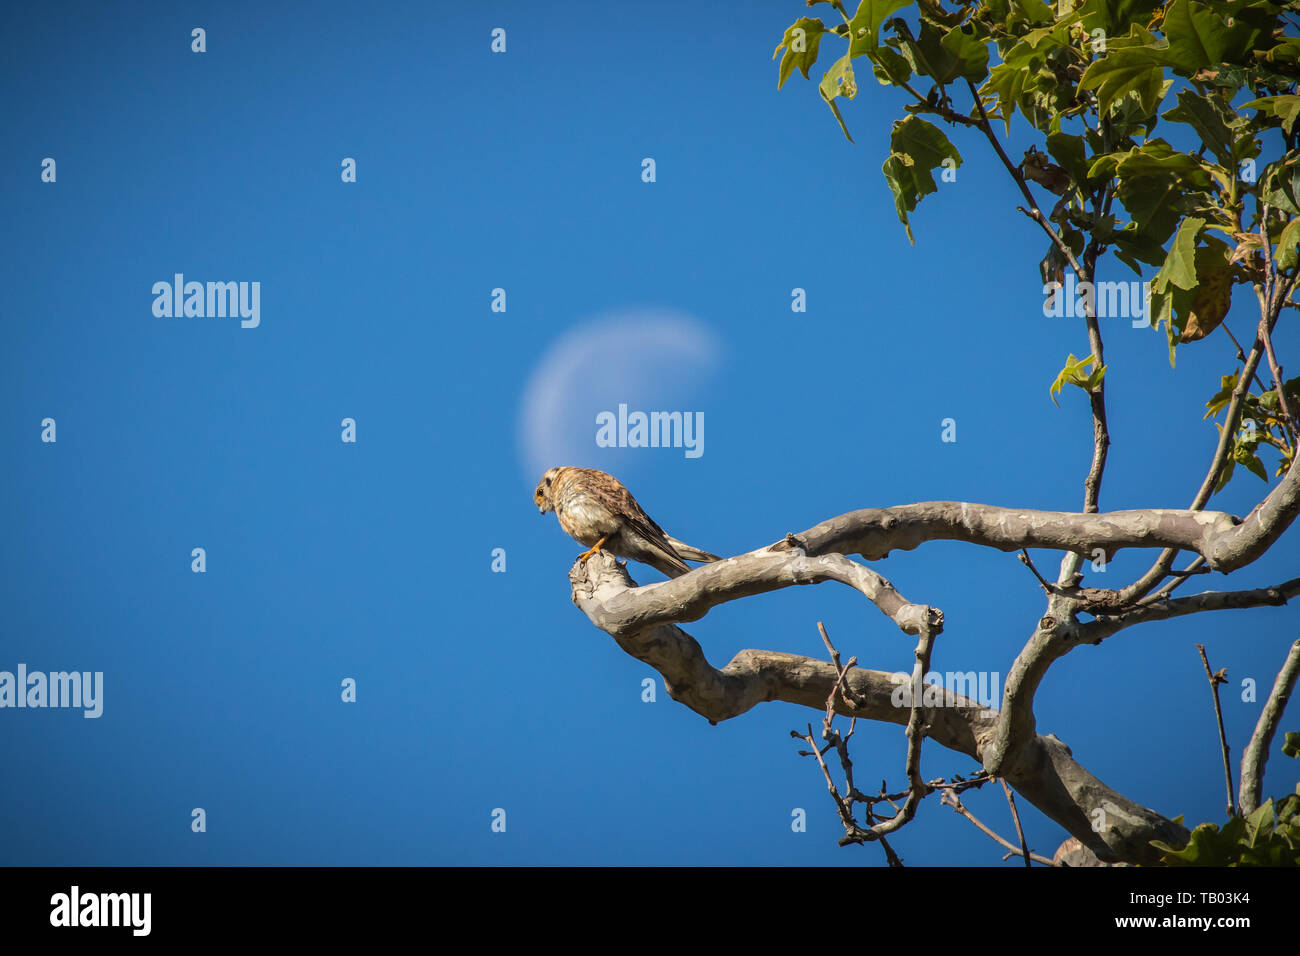 American Kestrel  (Falco sparverius ) perched in a sycamore tree with the moon above and behind in a park in Orange County, California; USA - Stock Image